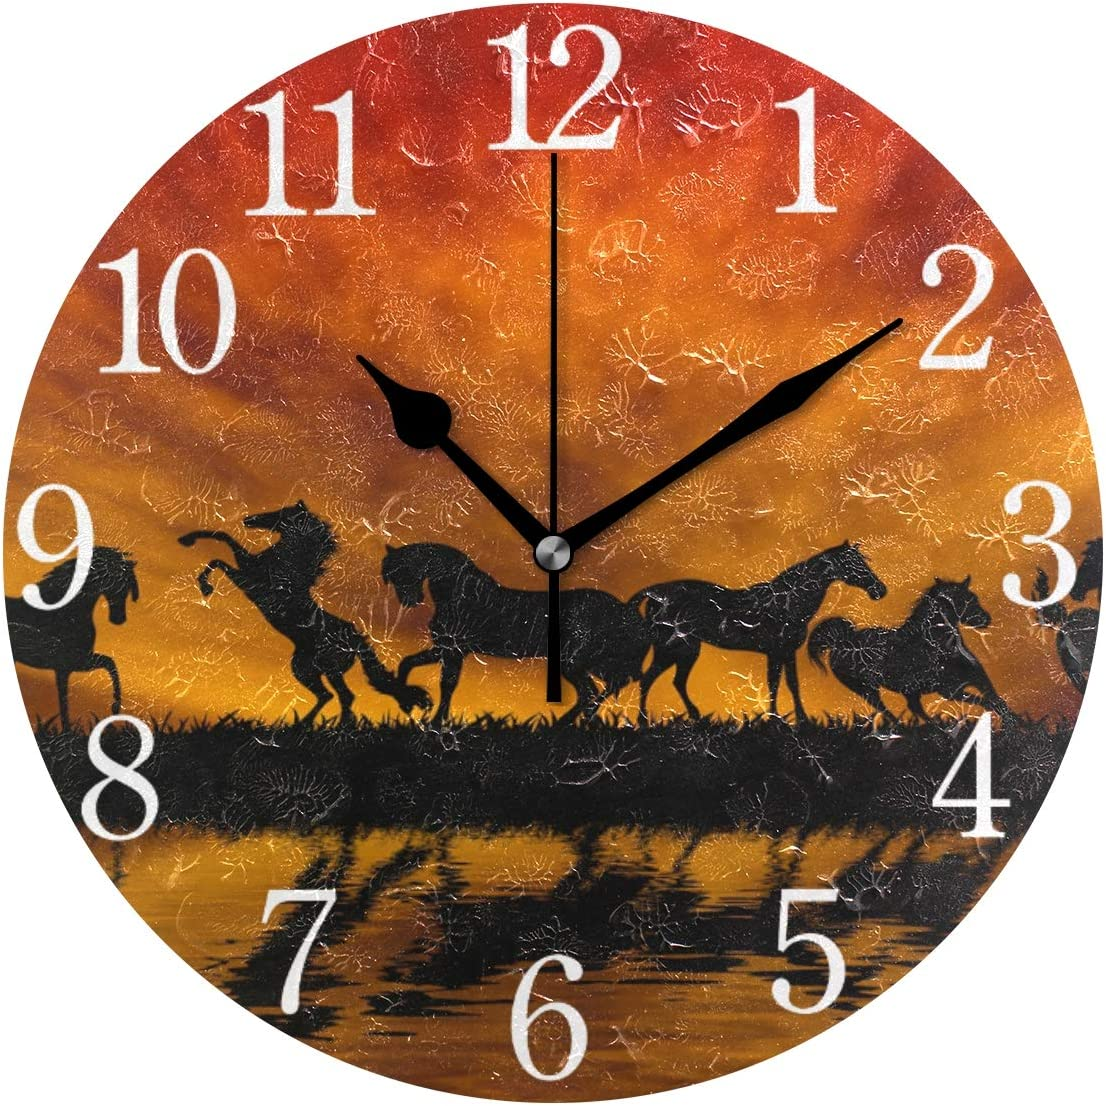 senya Wall Clock Silent 9.5 Inch Battery Operated Non Ticking Round Decorative Acrylic Quiet Clocks for Bedroom Office School Home (Dark Horse)